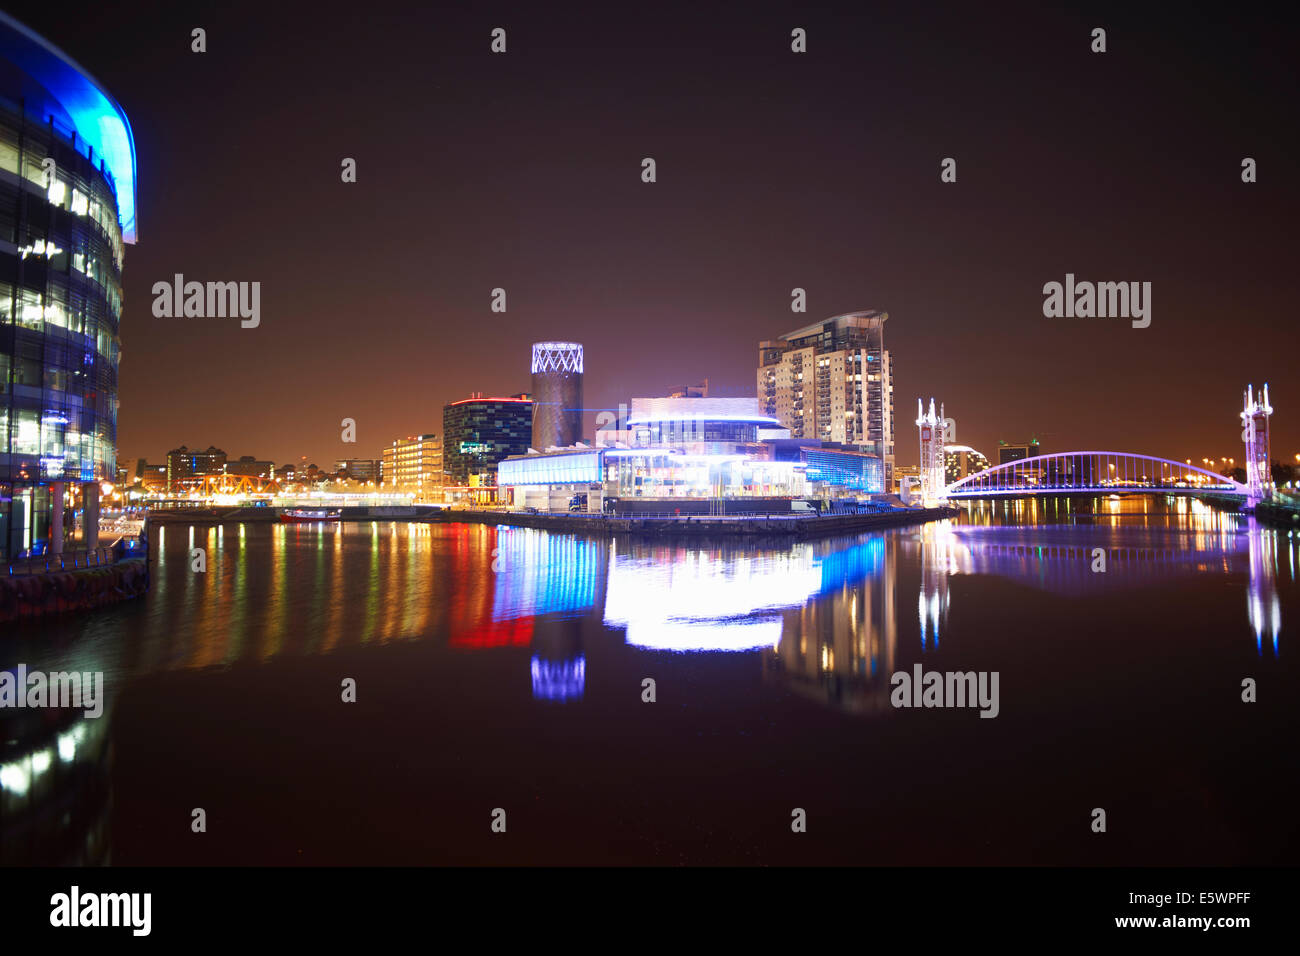 Media City und Kanal in der Nacht, Manchester, UK Stockfoto